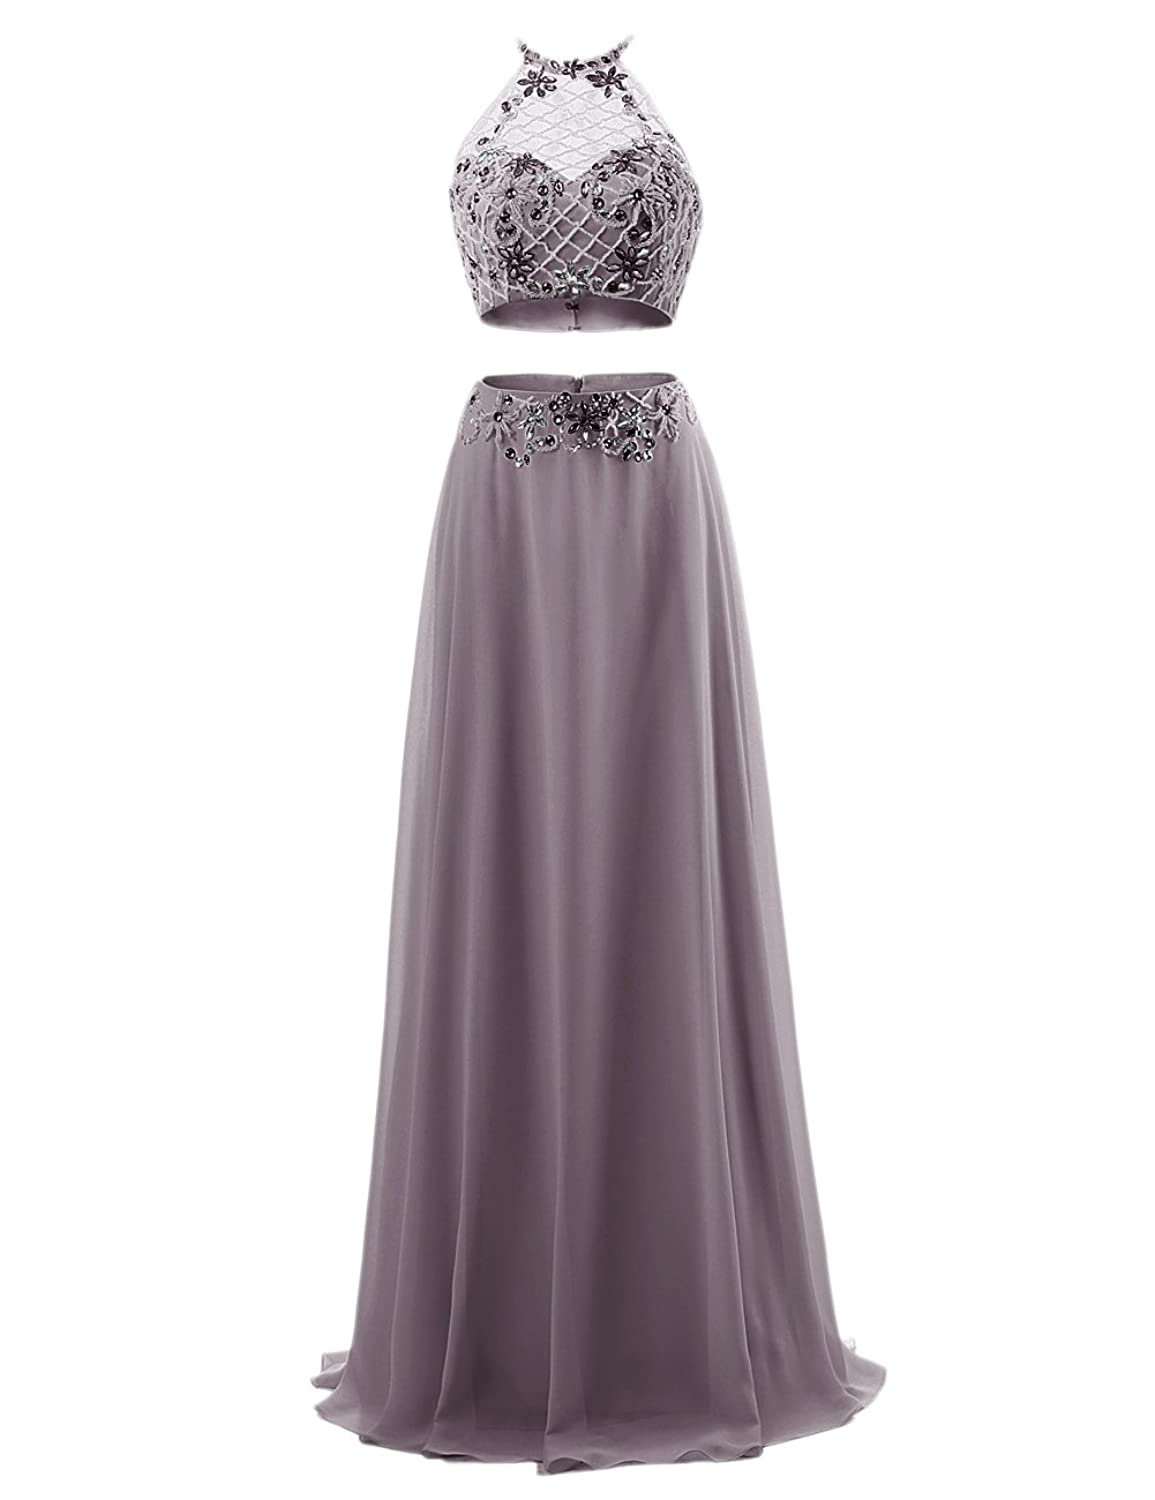 Bbonlinedress Women's Two Pieces Halter Beaded Bridal Evening party prom dress